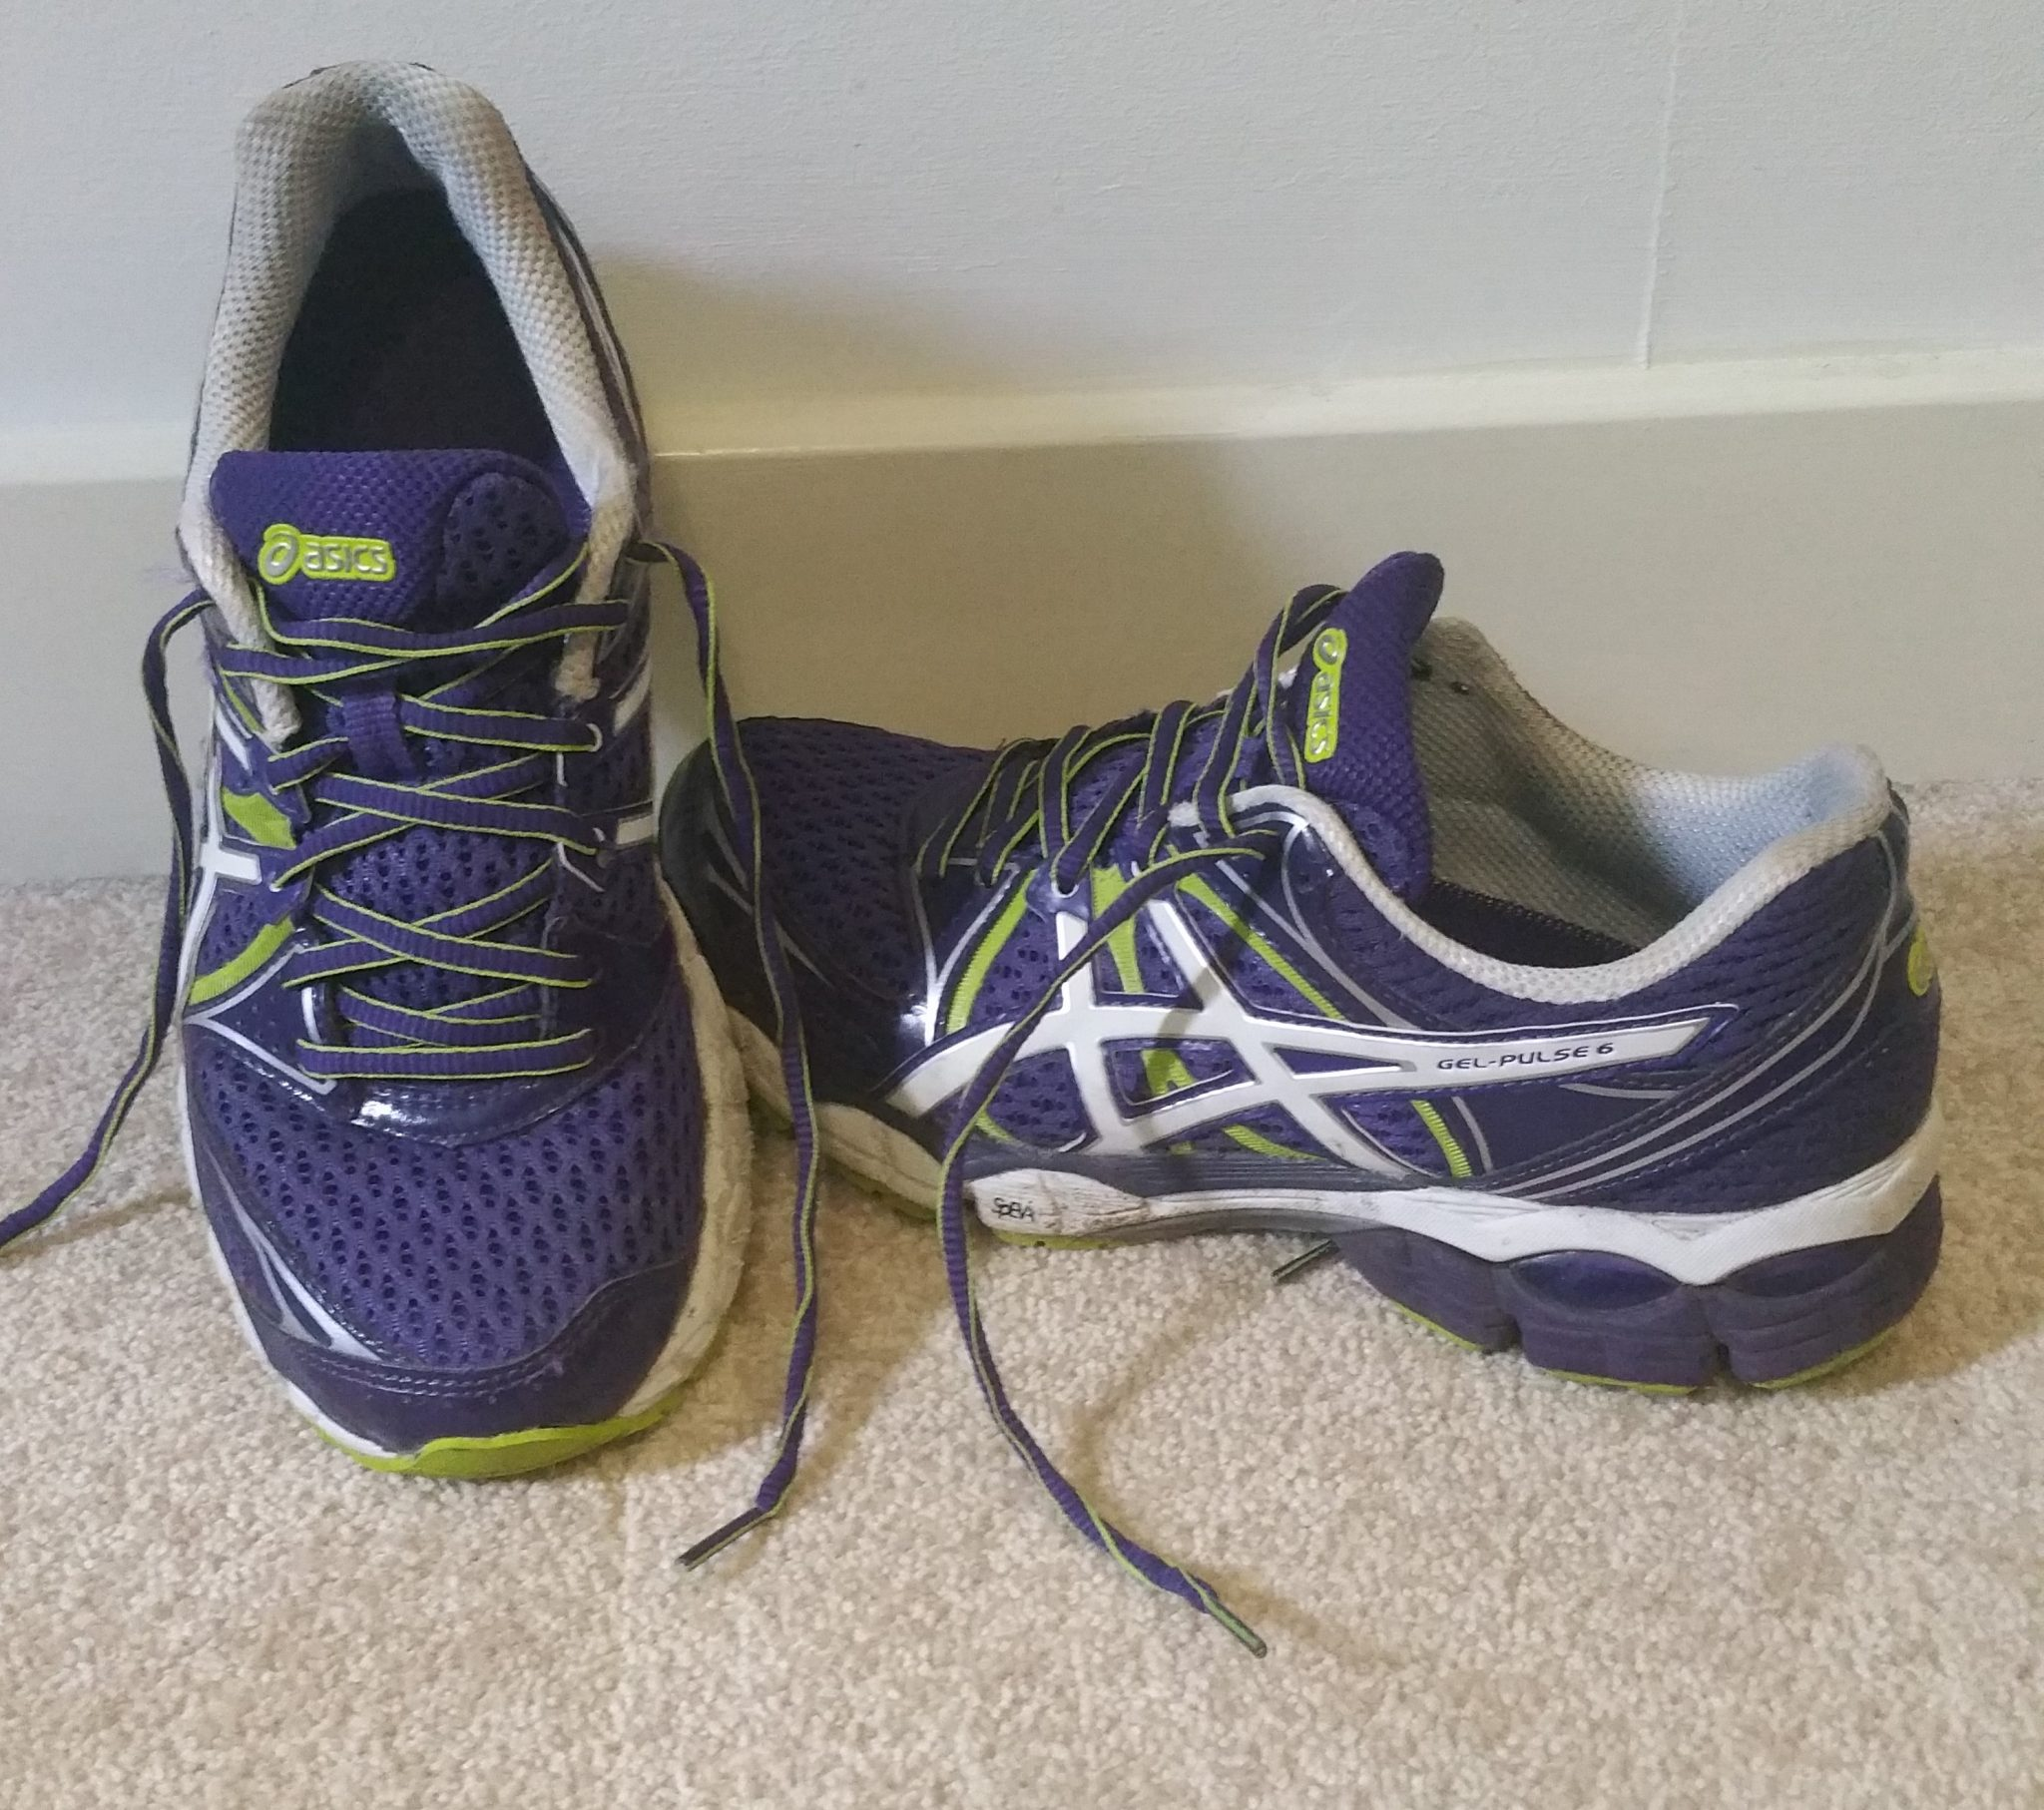 09ceb08f5a0c8 Asics Gel-Pulse 6 Review - The Mummy Toolbox